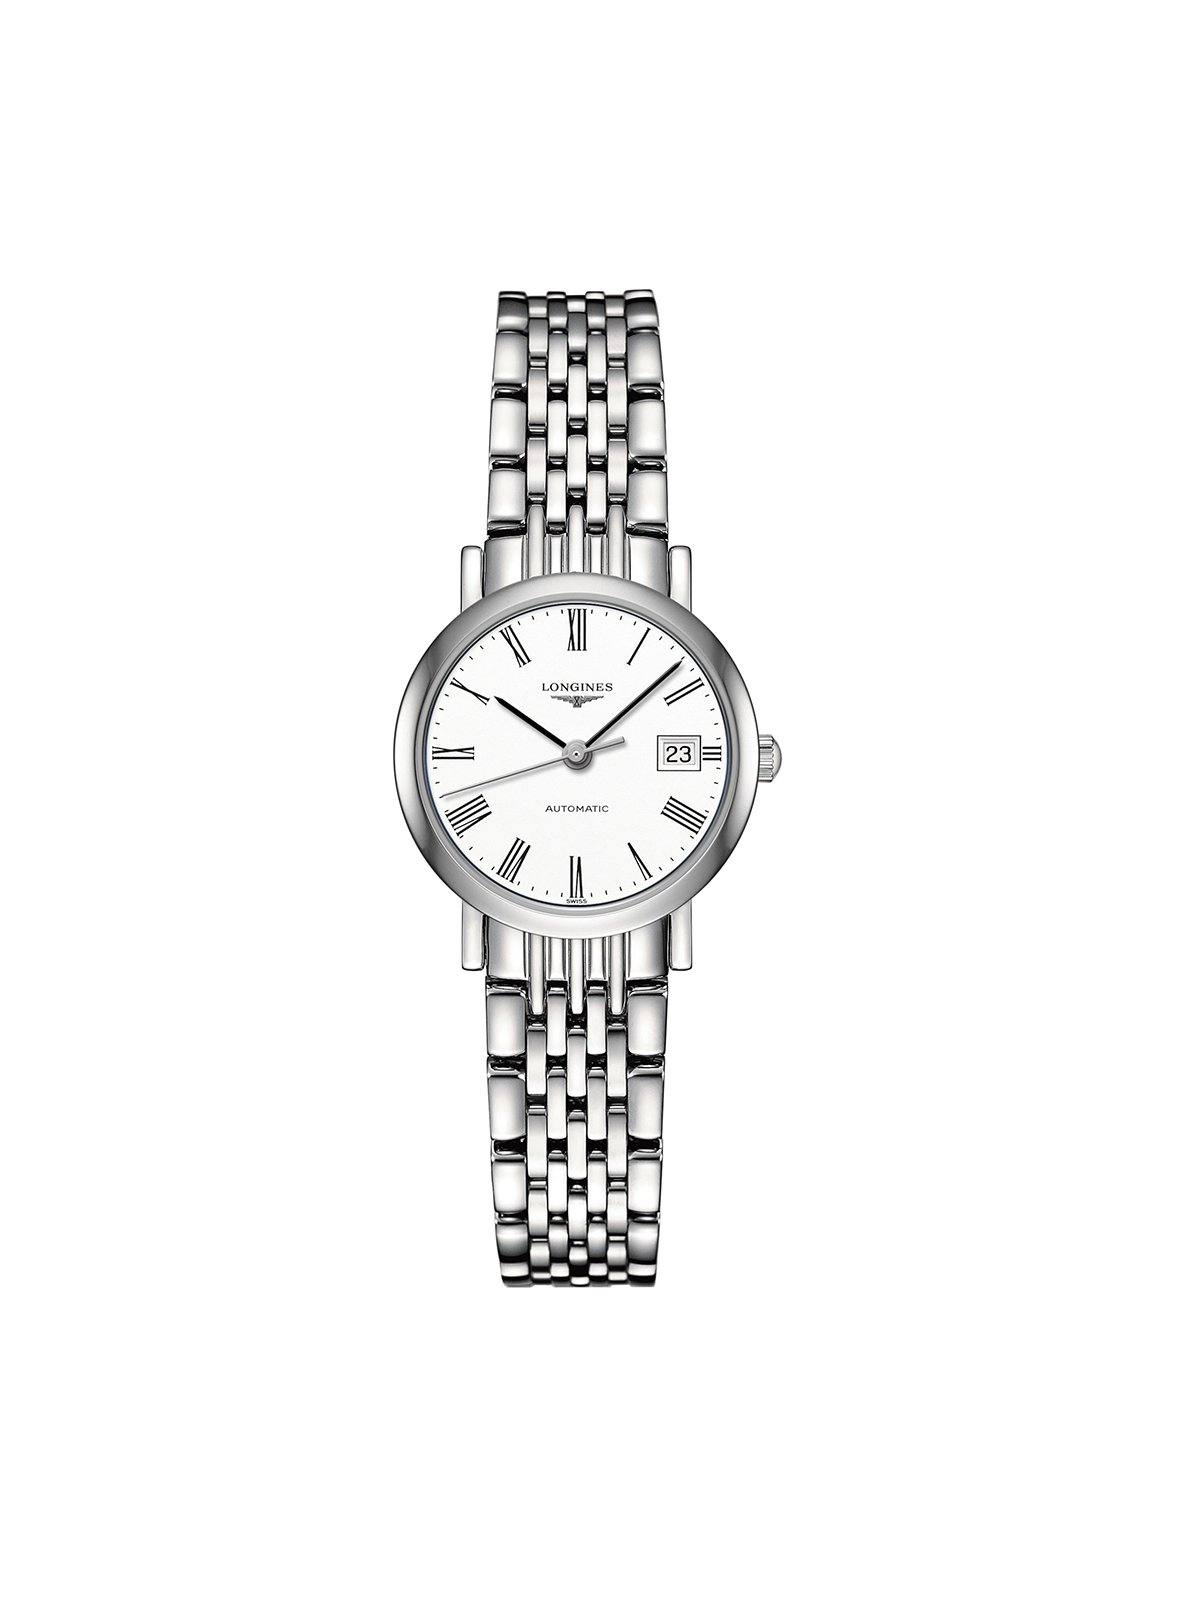 L4.309.4.11.6 Longines Ladies 25.5mm Elegant Collection Steel Automatic Watch on Bracelet